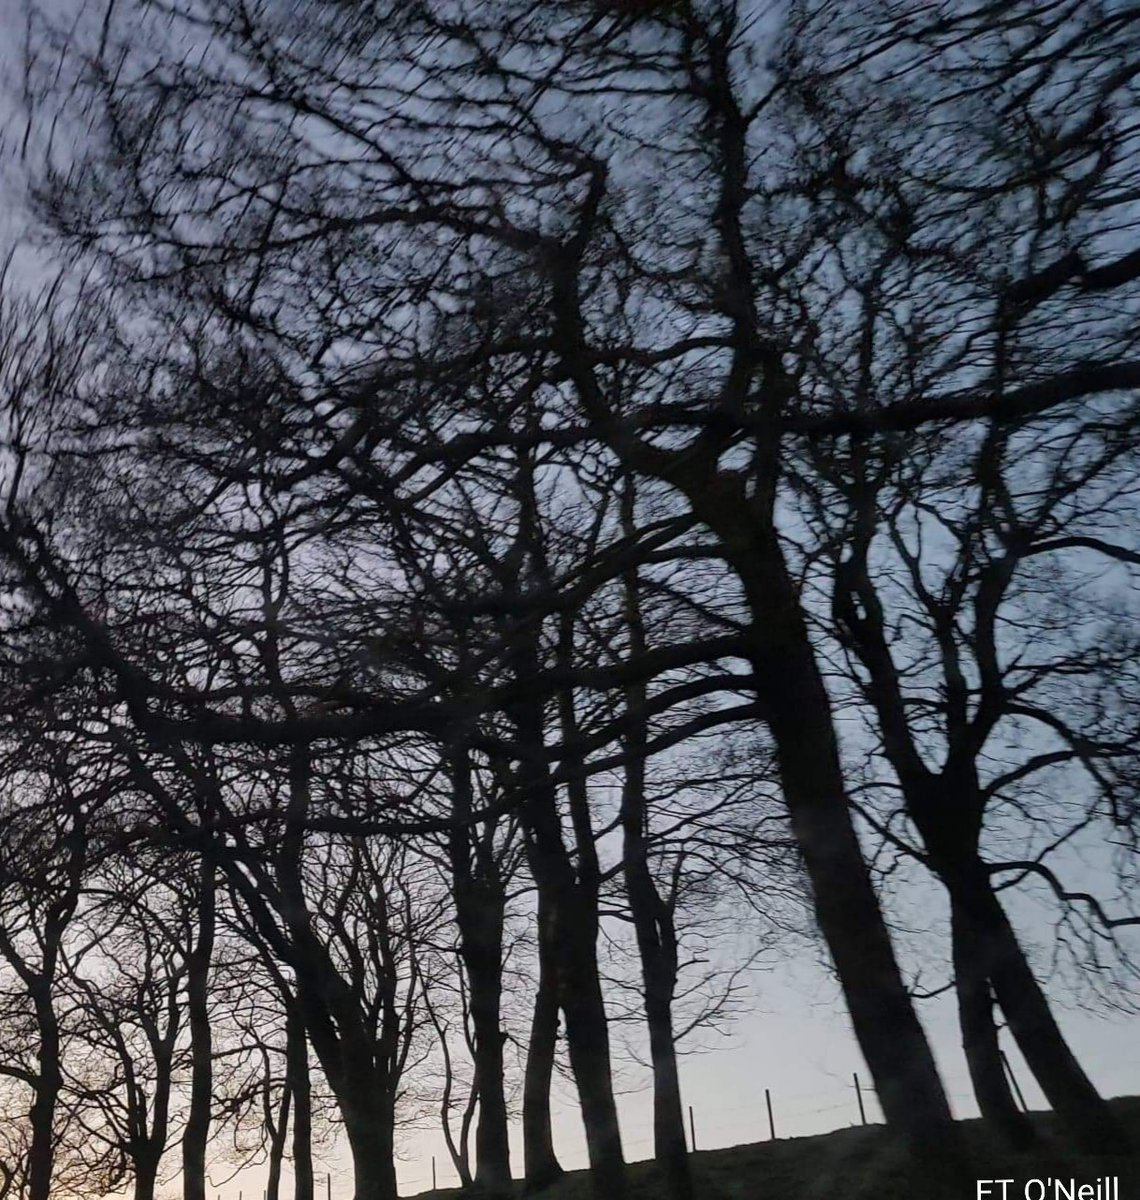 test Twitter Media - Unclear..  Twilight induces bizarre confusions  Imprecise and indistinct passings Fleeting formless flinching fogs Casting errie shadowy impressions Greyish visages of blackish apparel Steal within light's ambiguity of time Unknowns remain untouchable.. #MypoetryEileen2019 https://t.co/bX1FBcveA8